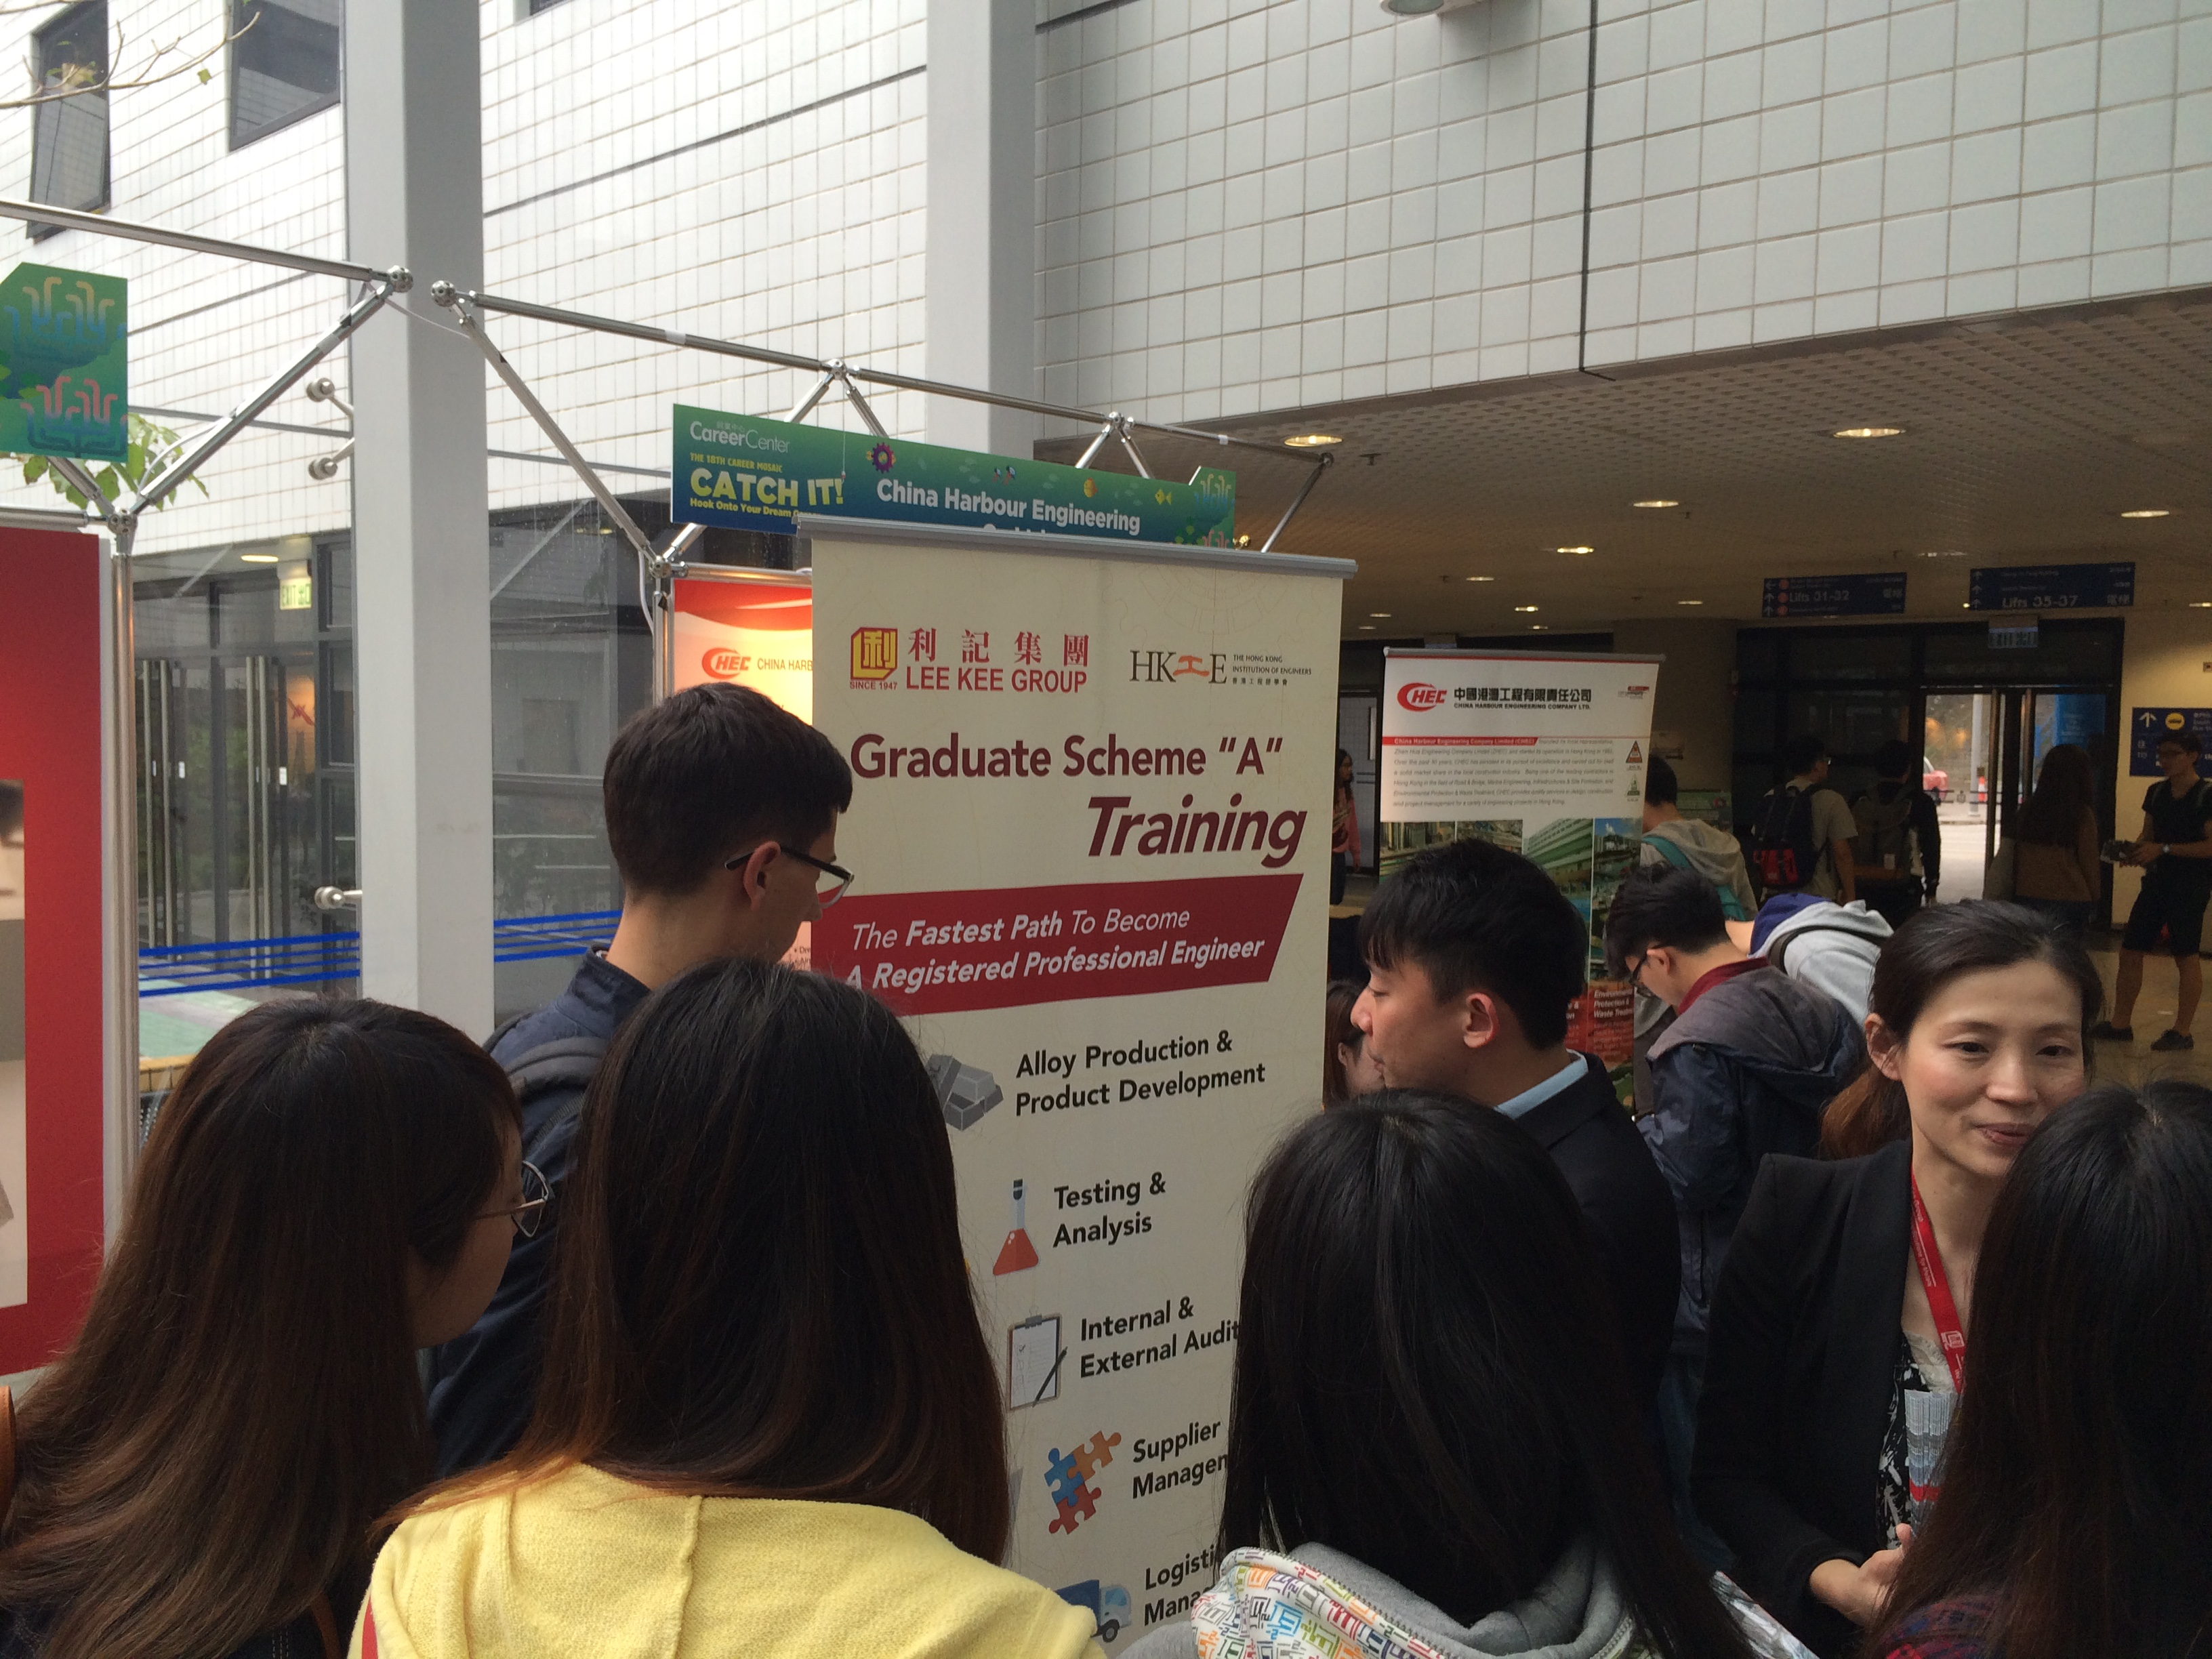 polyu career fair ust career mosaic lee kee polyu career fair ust career mosaic 2016